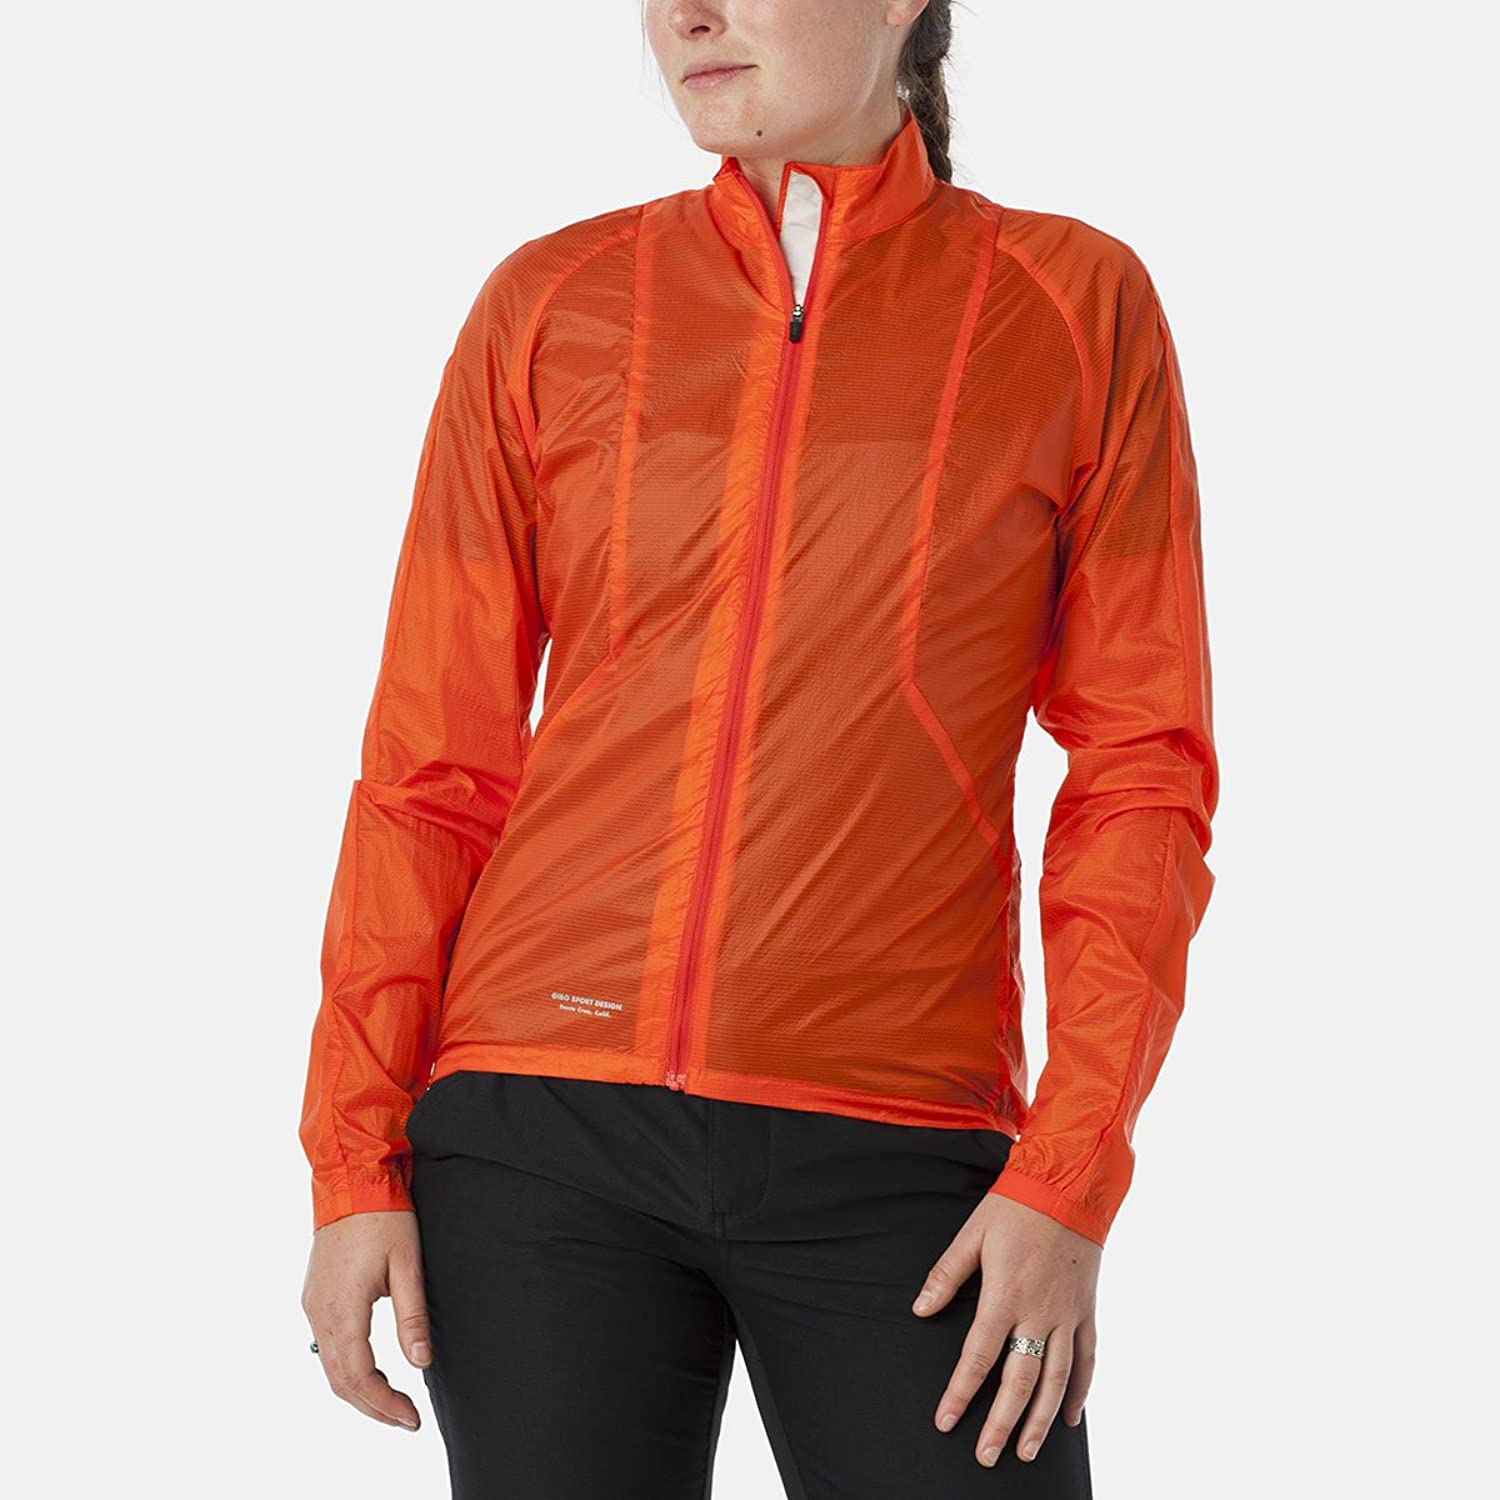 Giro New Road Wind Jacket  Women's Glowing Red, S